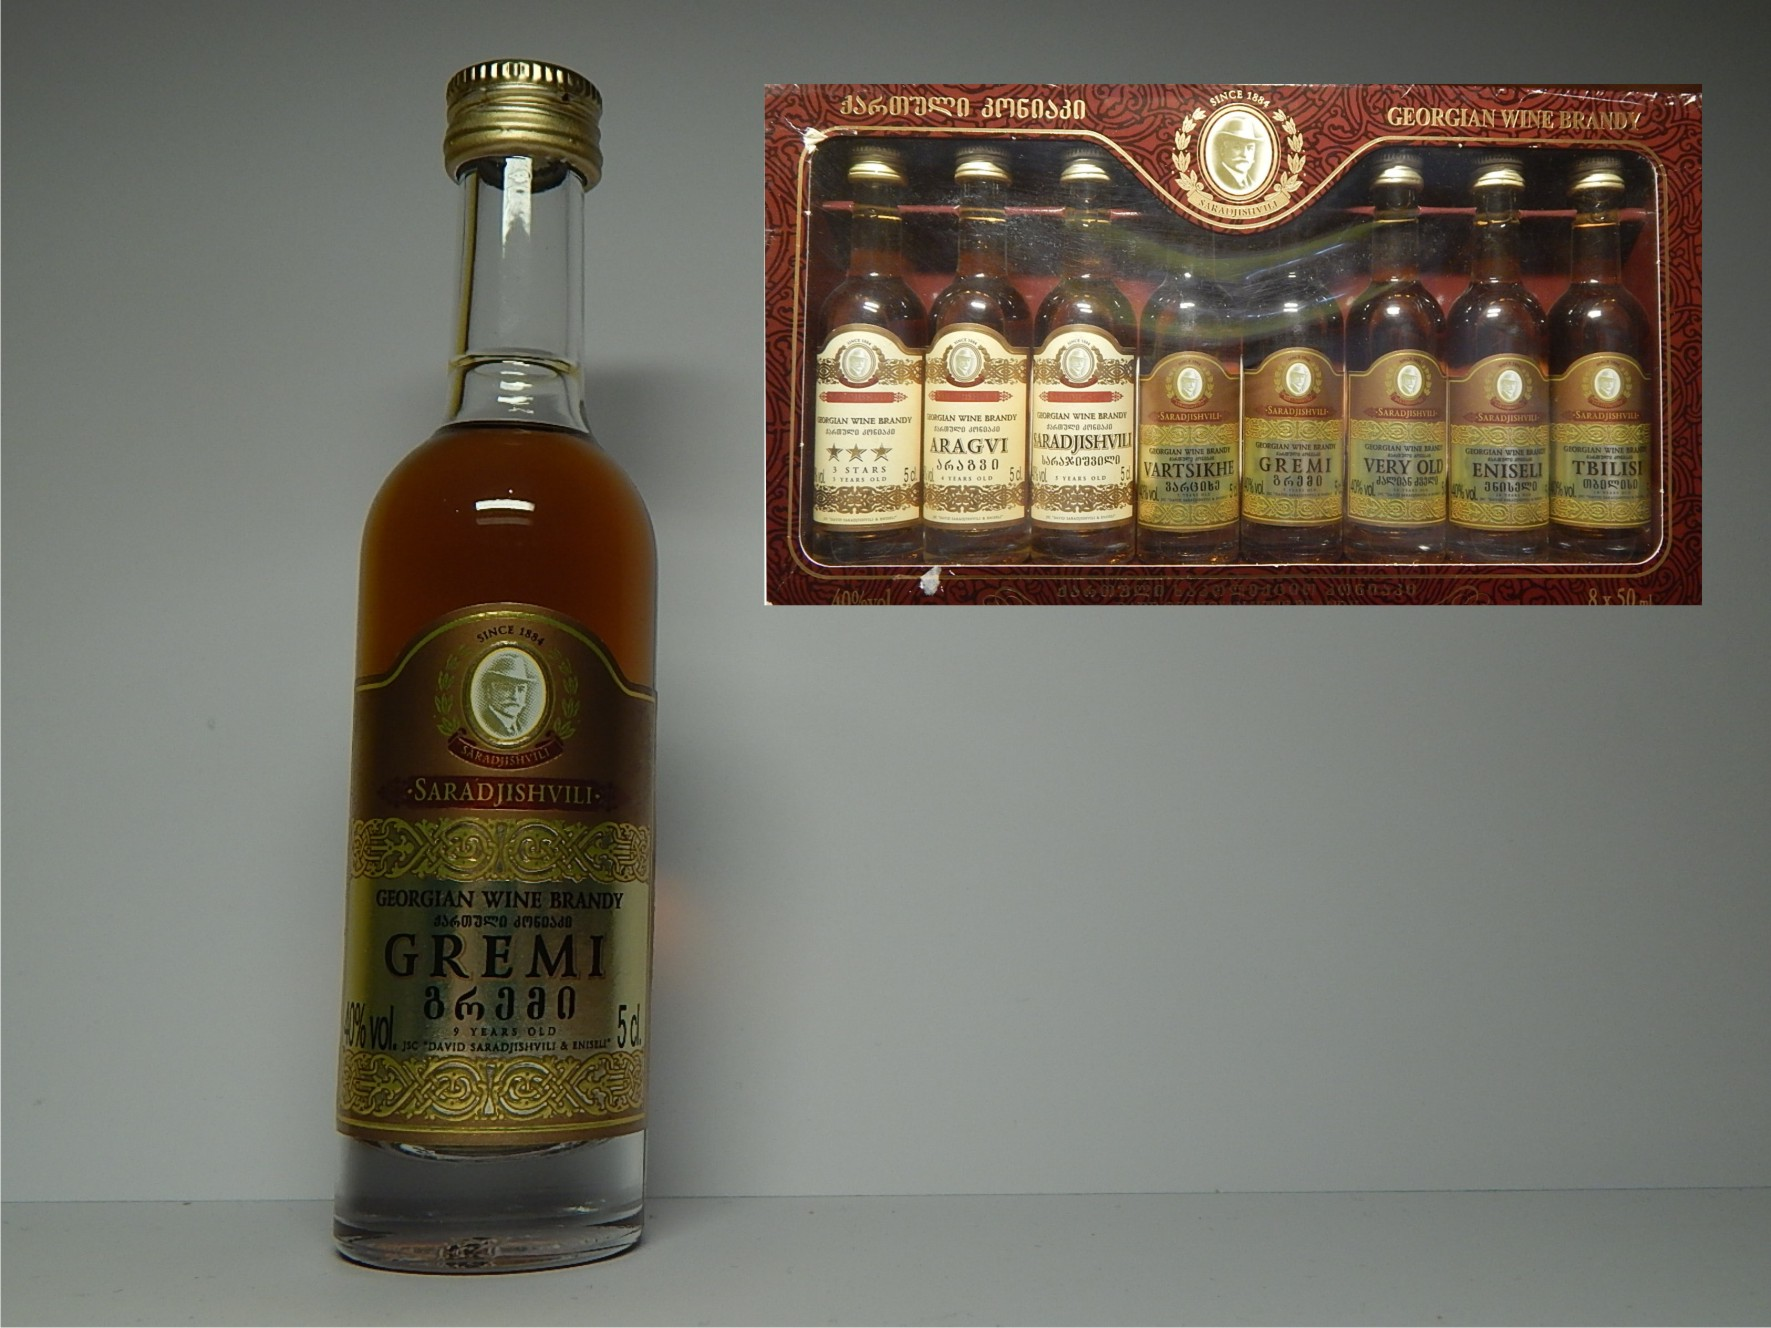 SARADJISHVILI GREMI 9yo Georgian Wine Brandy